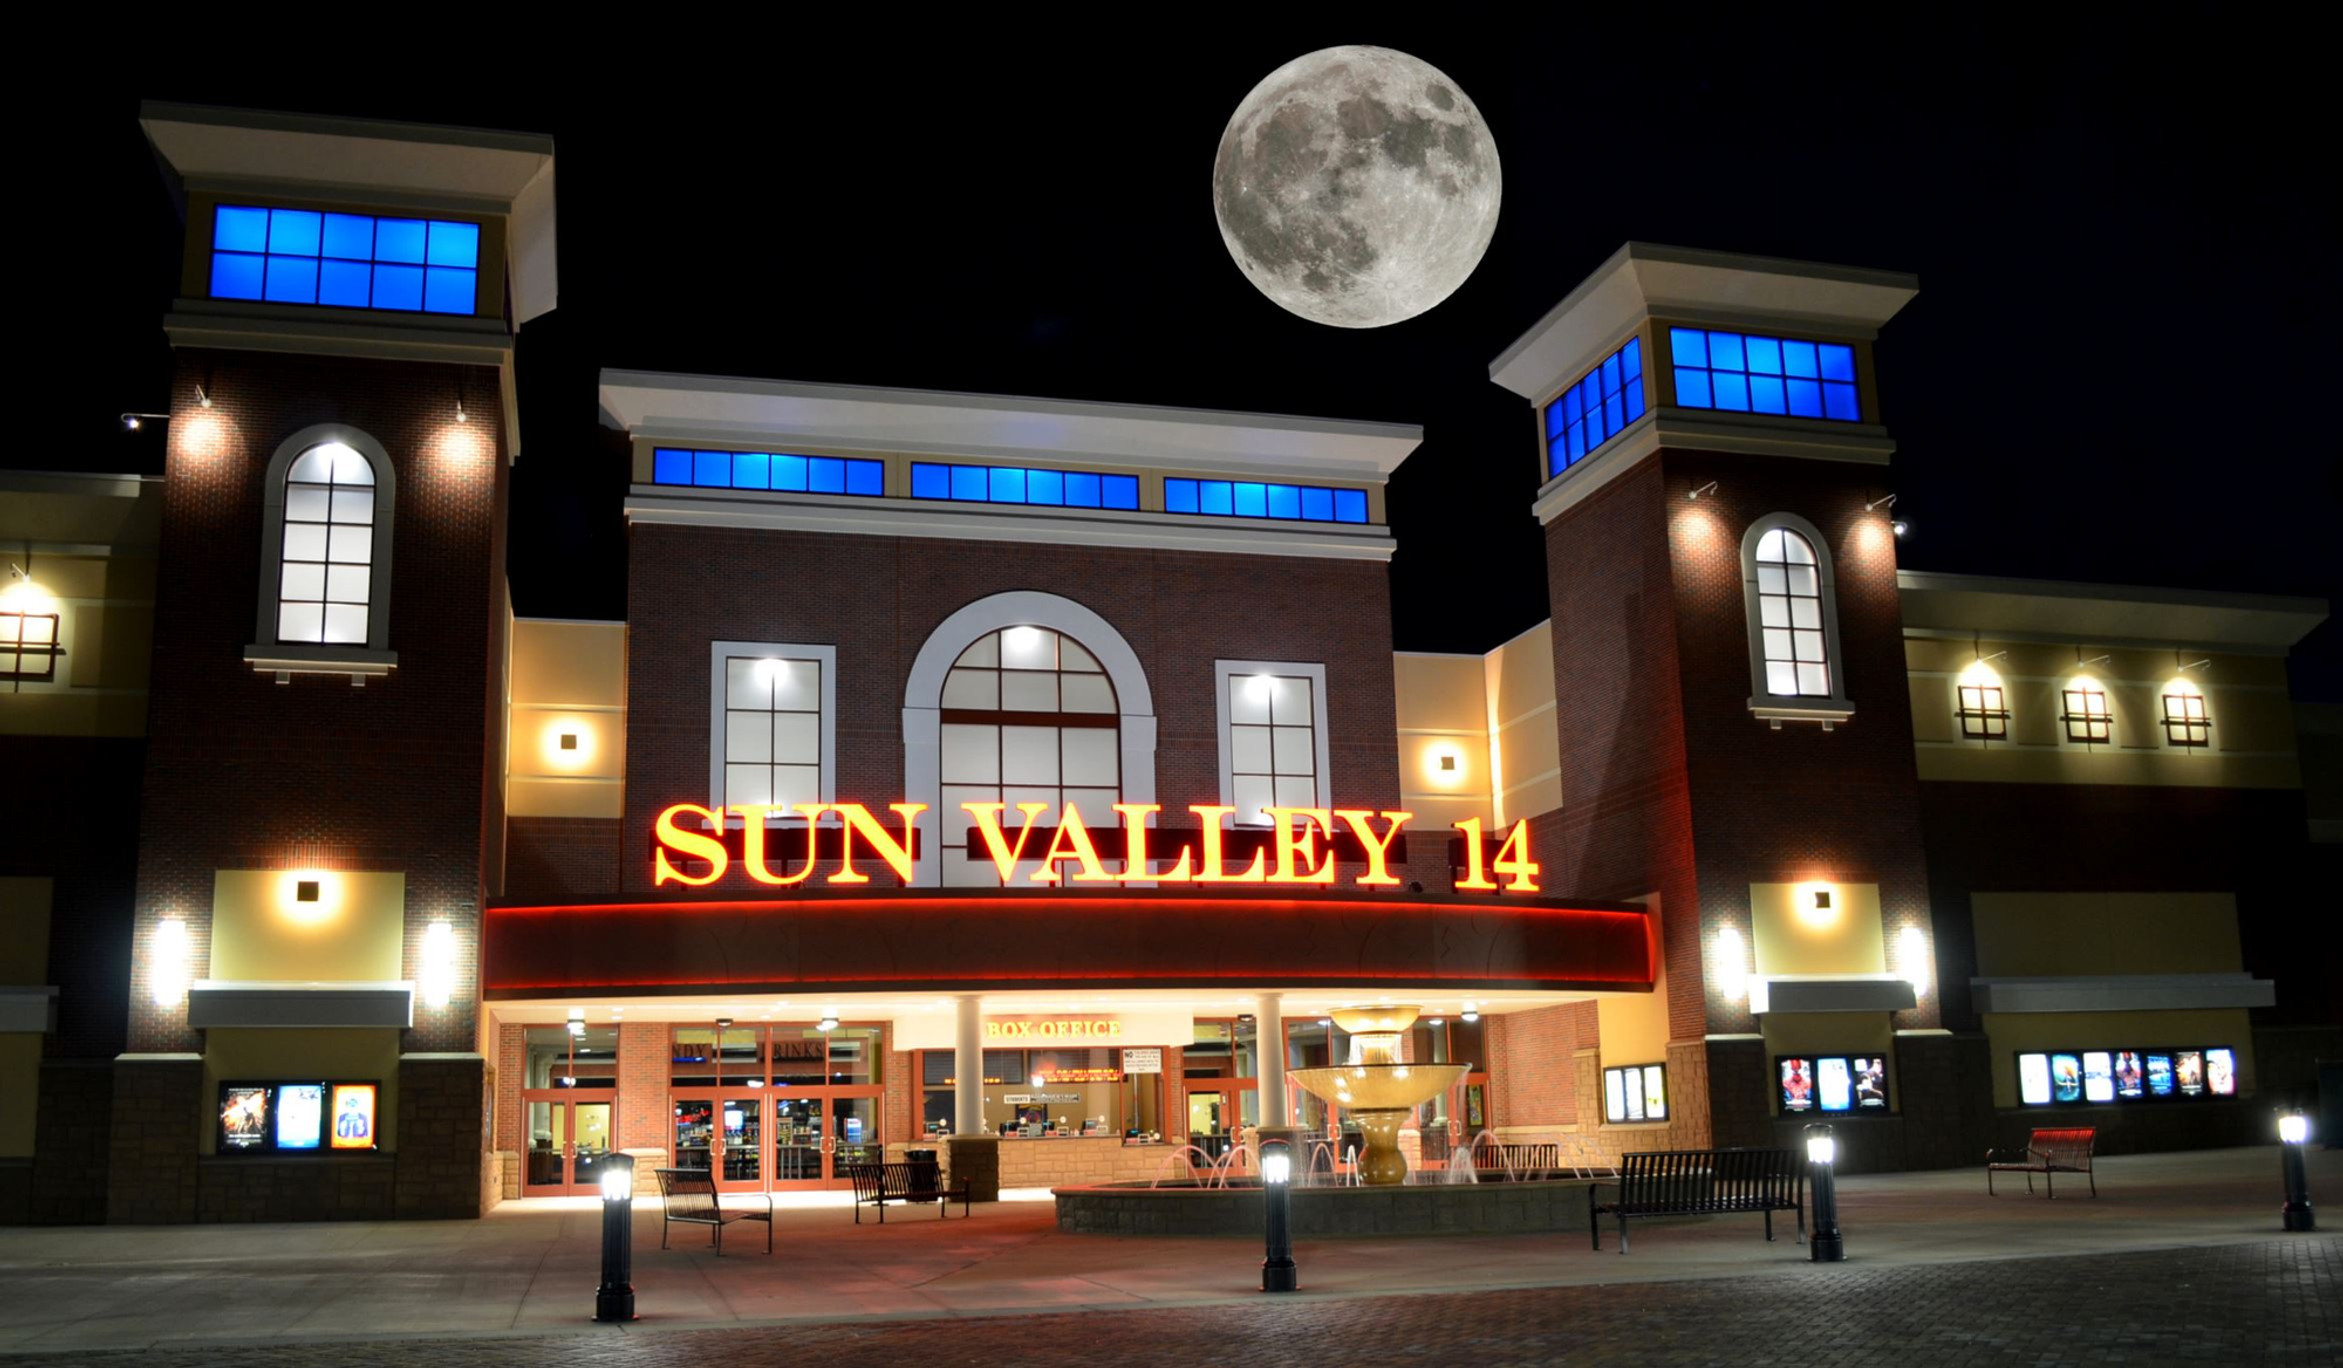 Sun Valley 14 - Indian Trail, NC | Stone Theatres